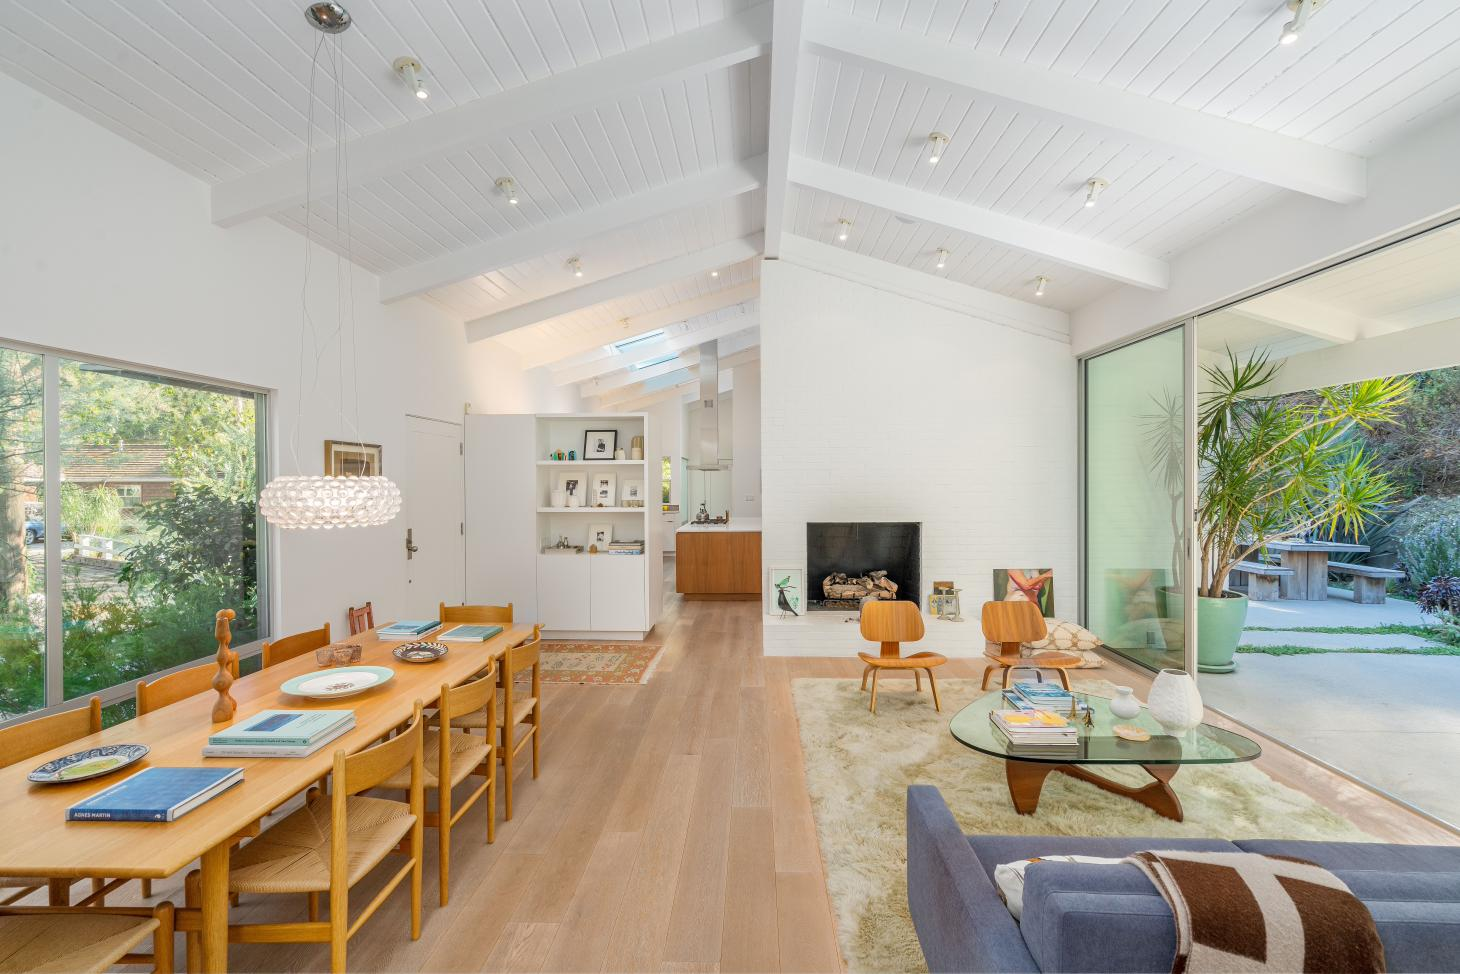 The mid-century interior restored by Montalba Architects